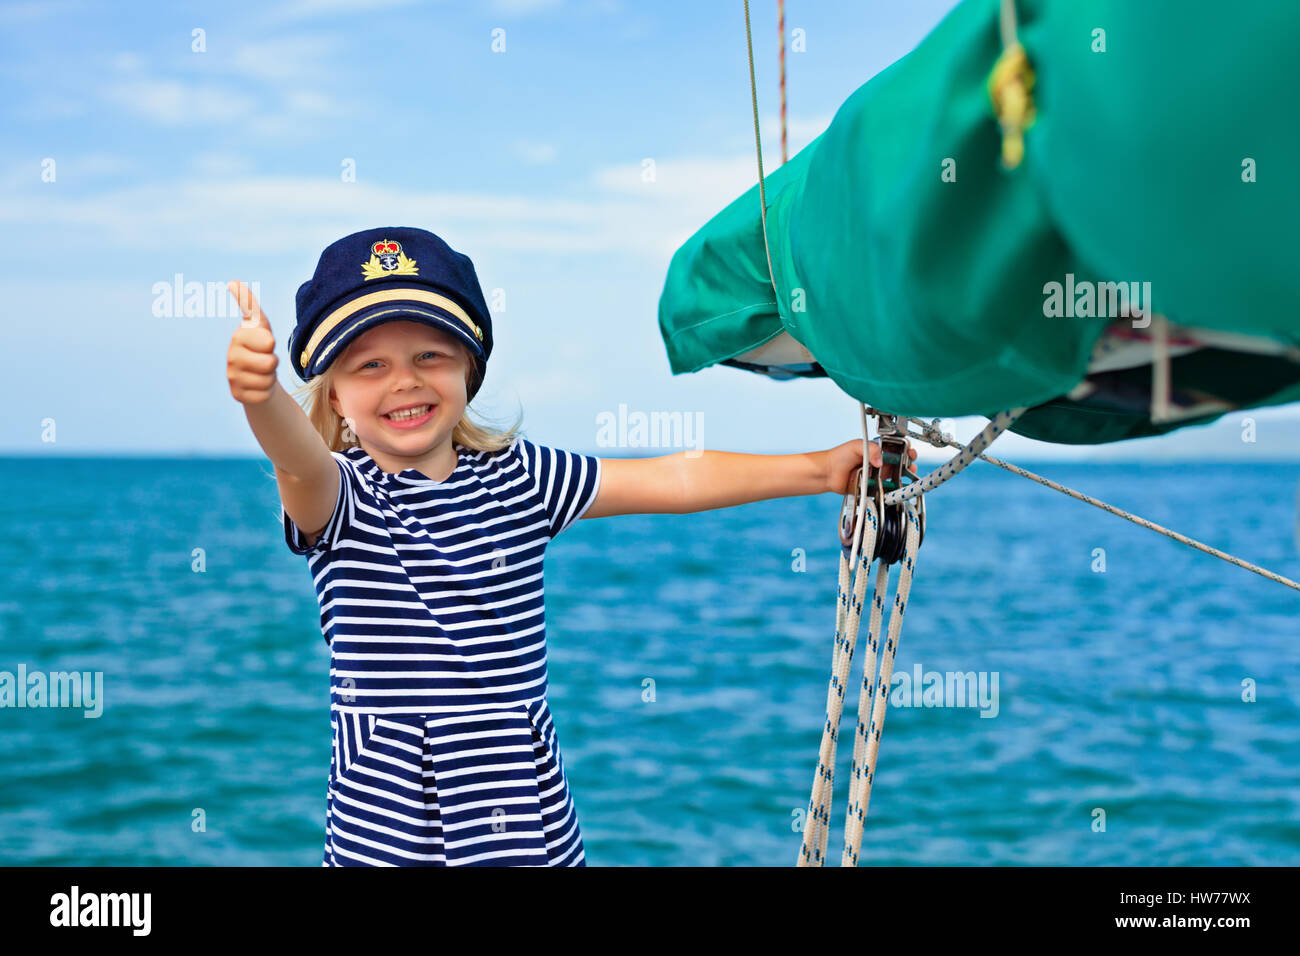 Happy little baby captain on board of sailing yacht watching offshore sea on summer cruise. Travel adventure, yachting - Stock Image